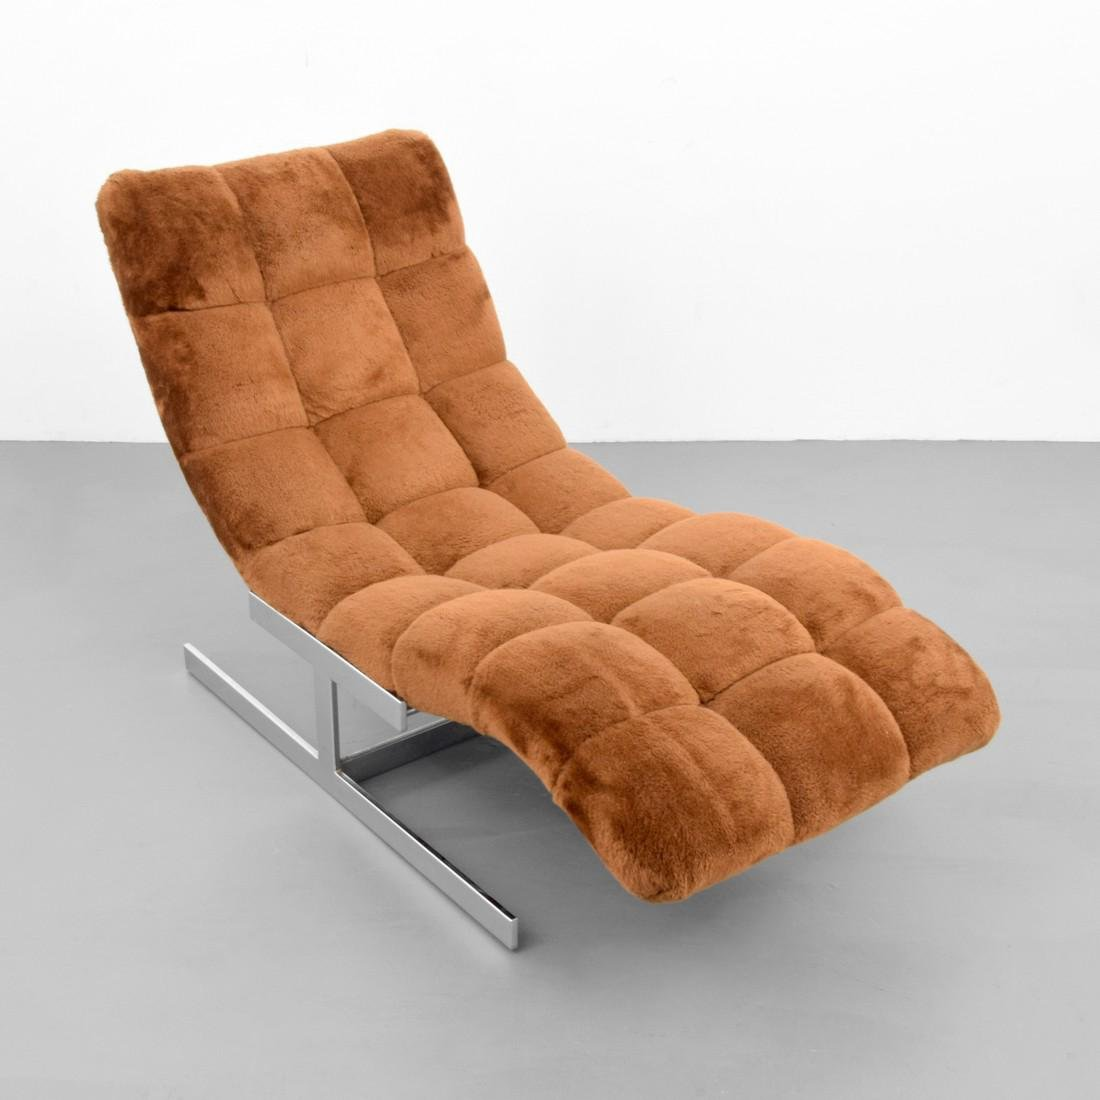 Chaise Lounge Chair, Manner of Milo Baughman - 2